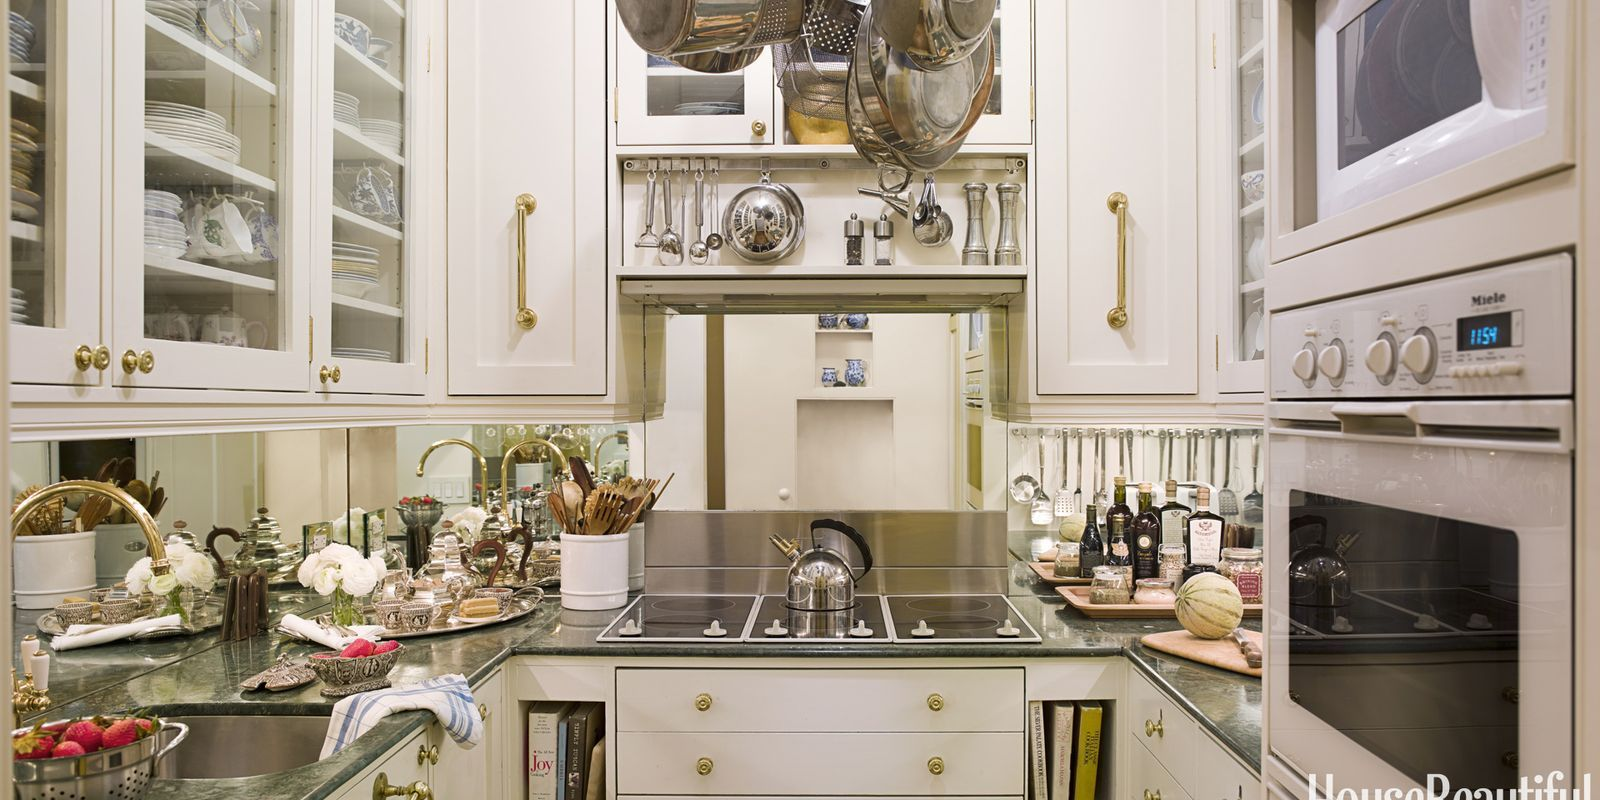 Mirrored Backsplash Pictures Gallery